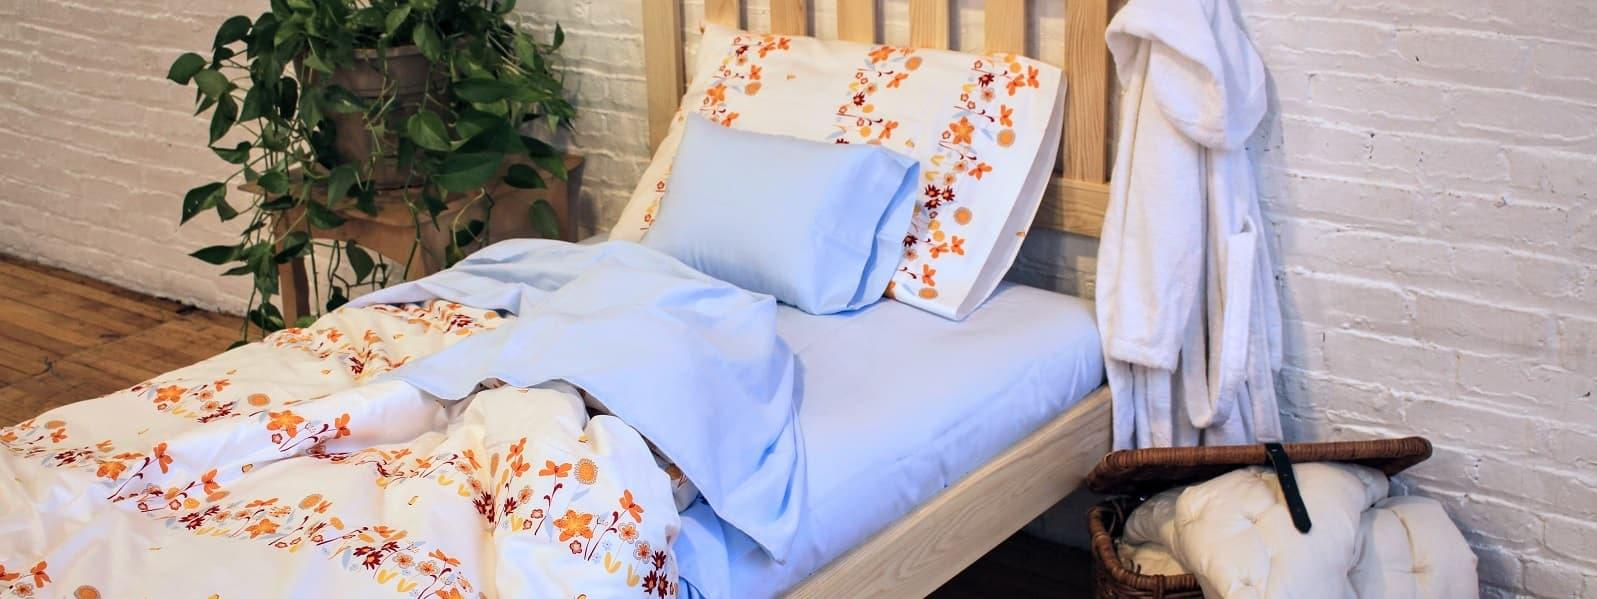 Organic Toppers, Duvets & Handmade Bedding